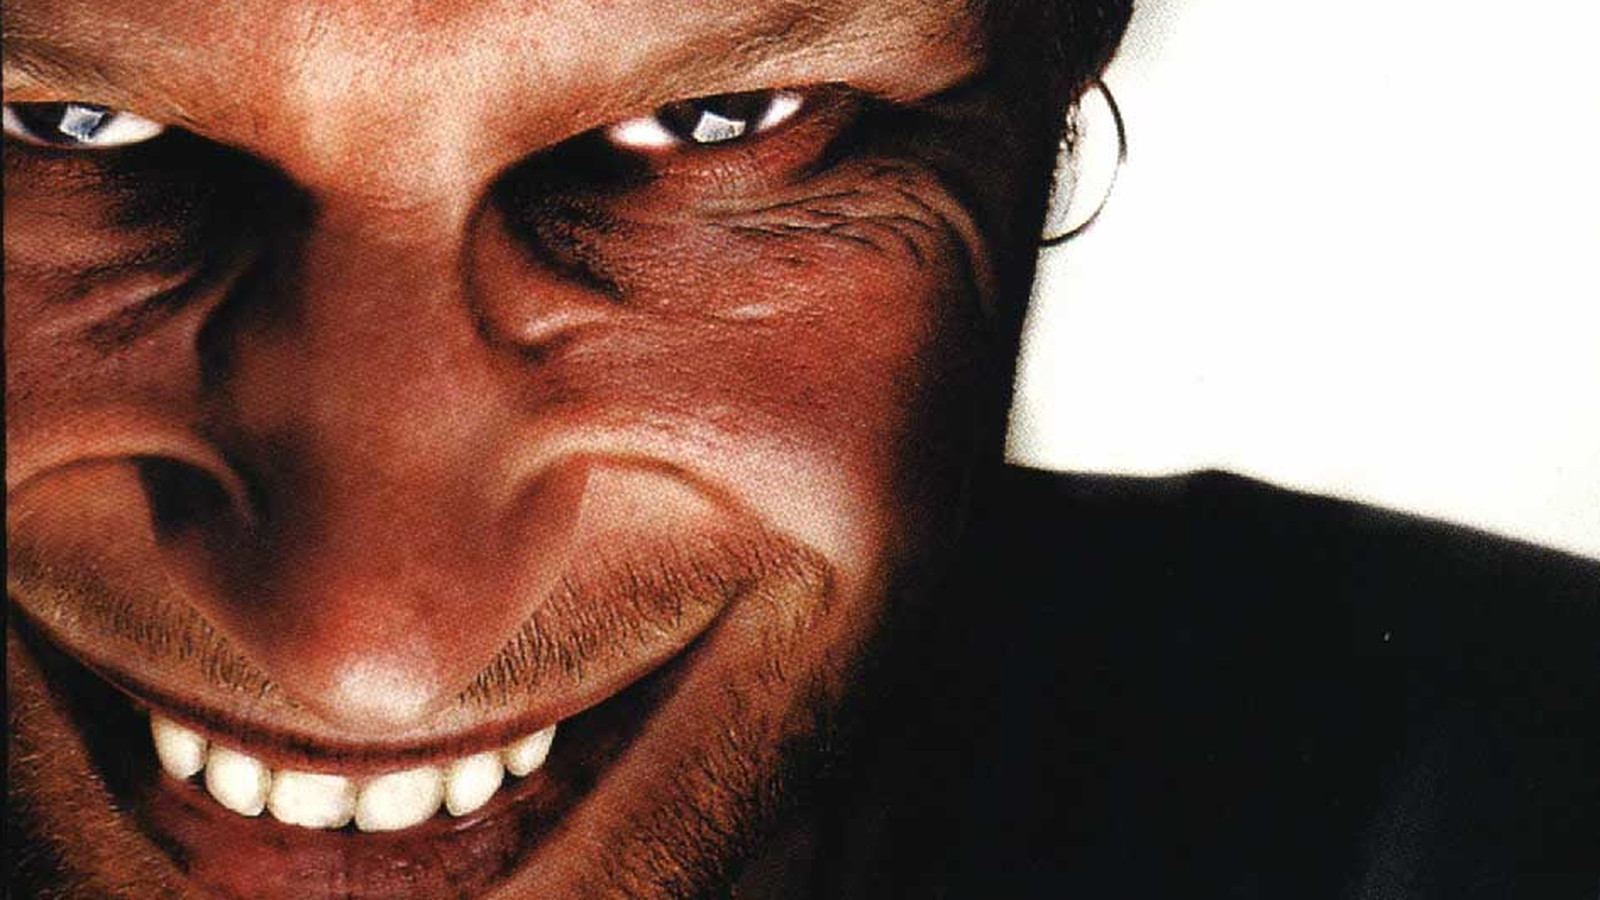 The mad extraterrestrial power of Aphex Twin